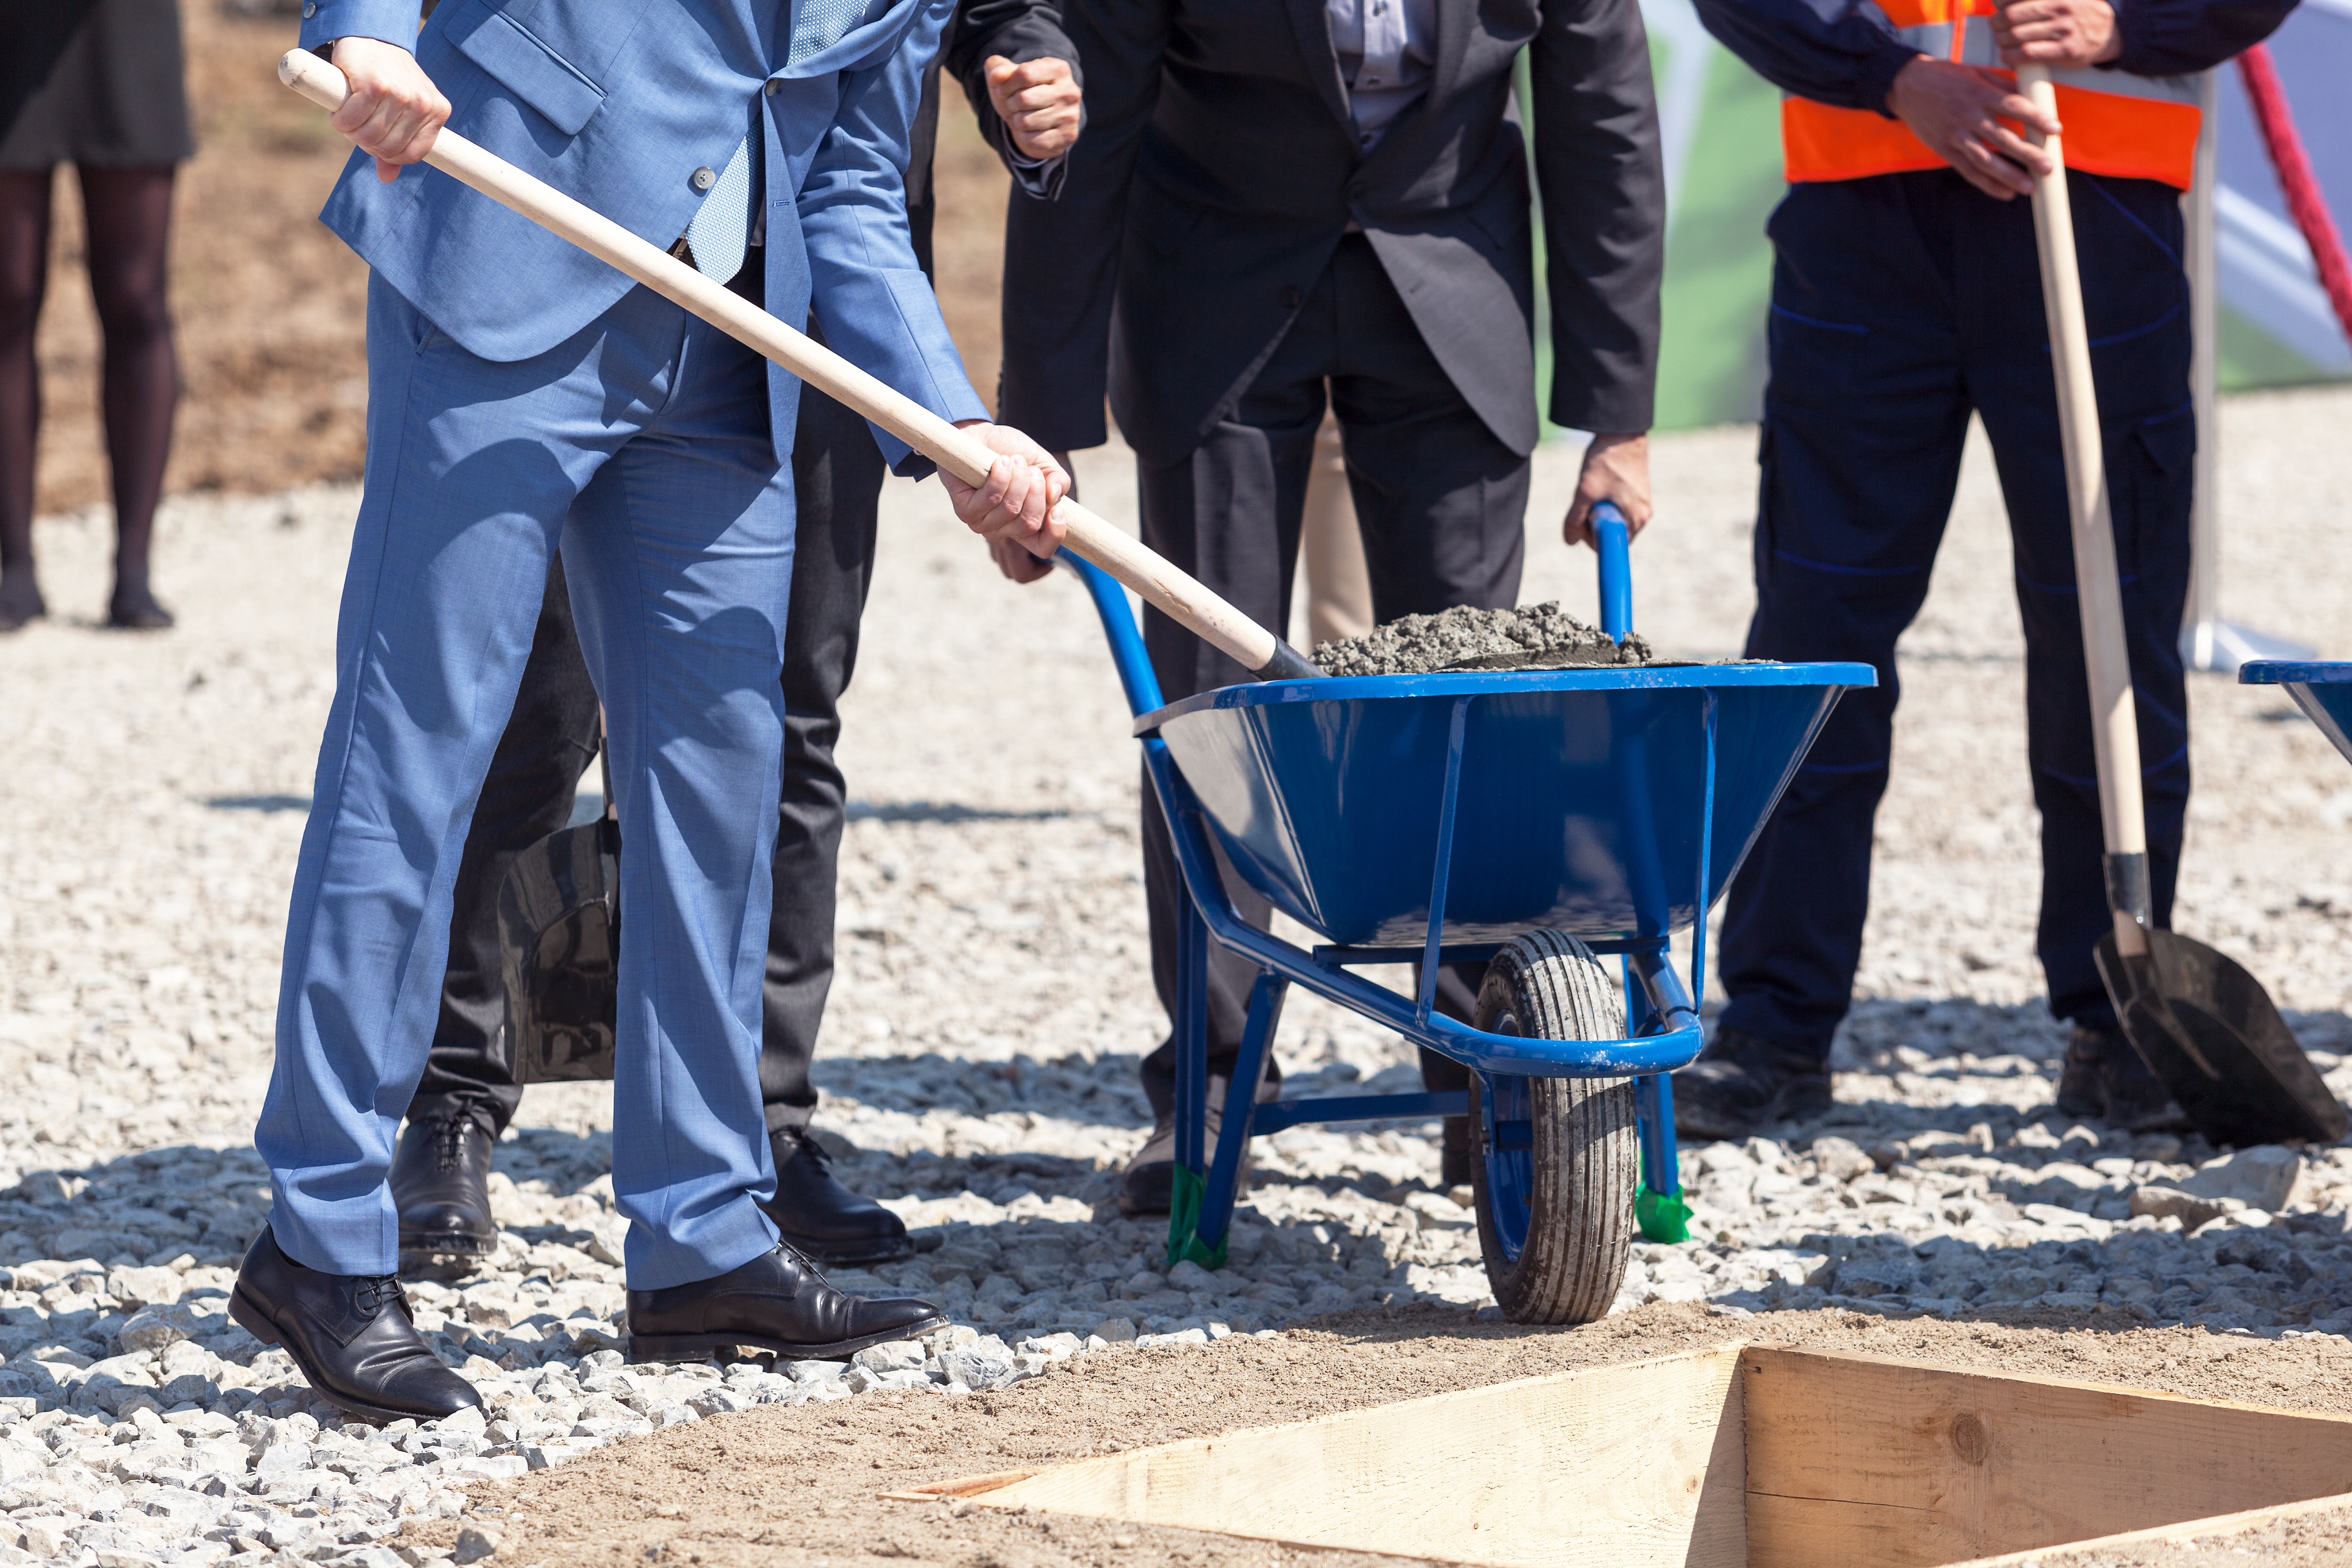 Cacique, LLC Breaks Ground on State-of-the-Art Dairy Processing Facility in Amarillo, Texas to Accelerate Expansion and Meet Growing Demand for Its Products Nationwide